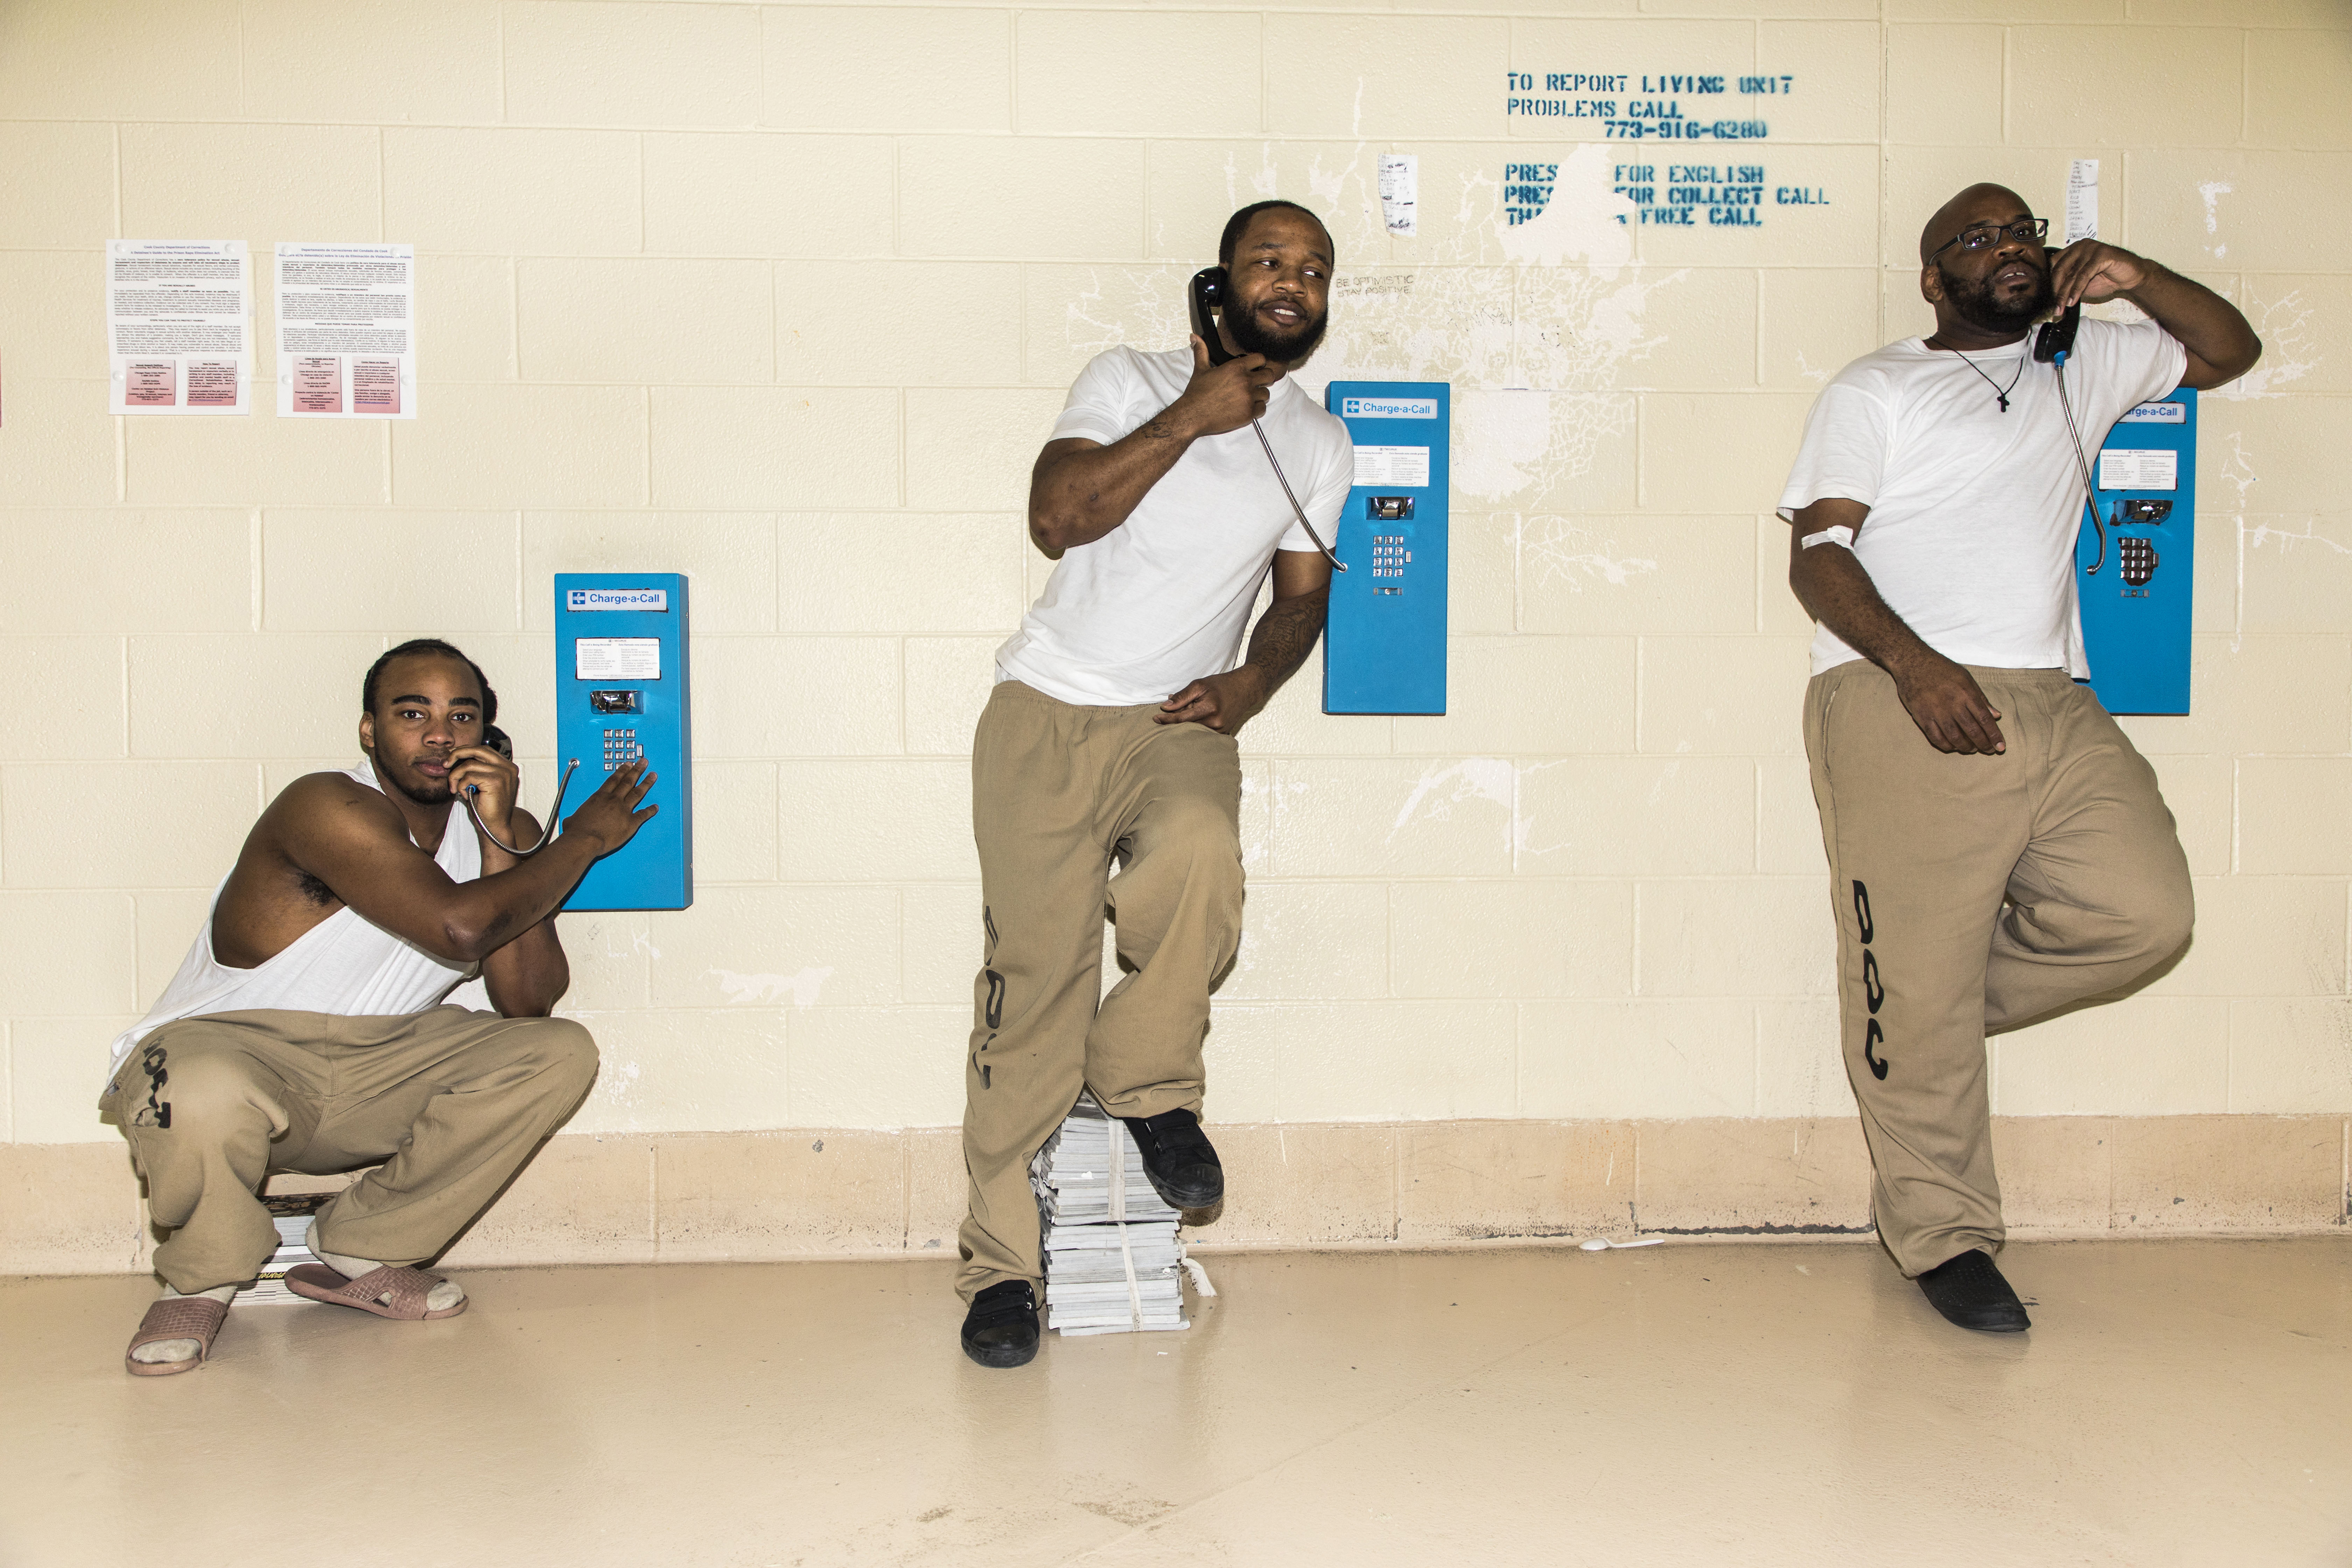 chicago cook correction county inmate picture search